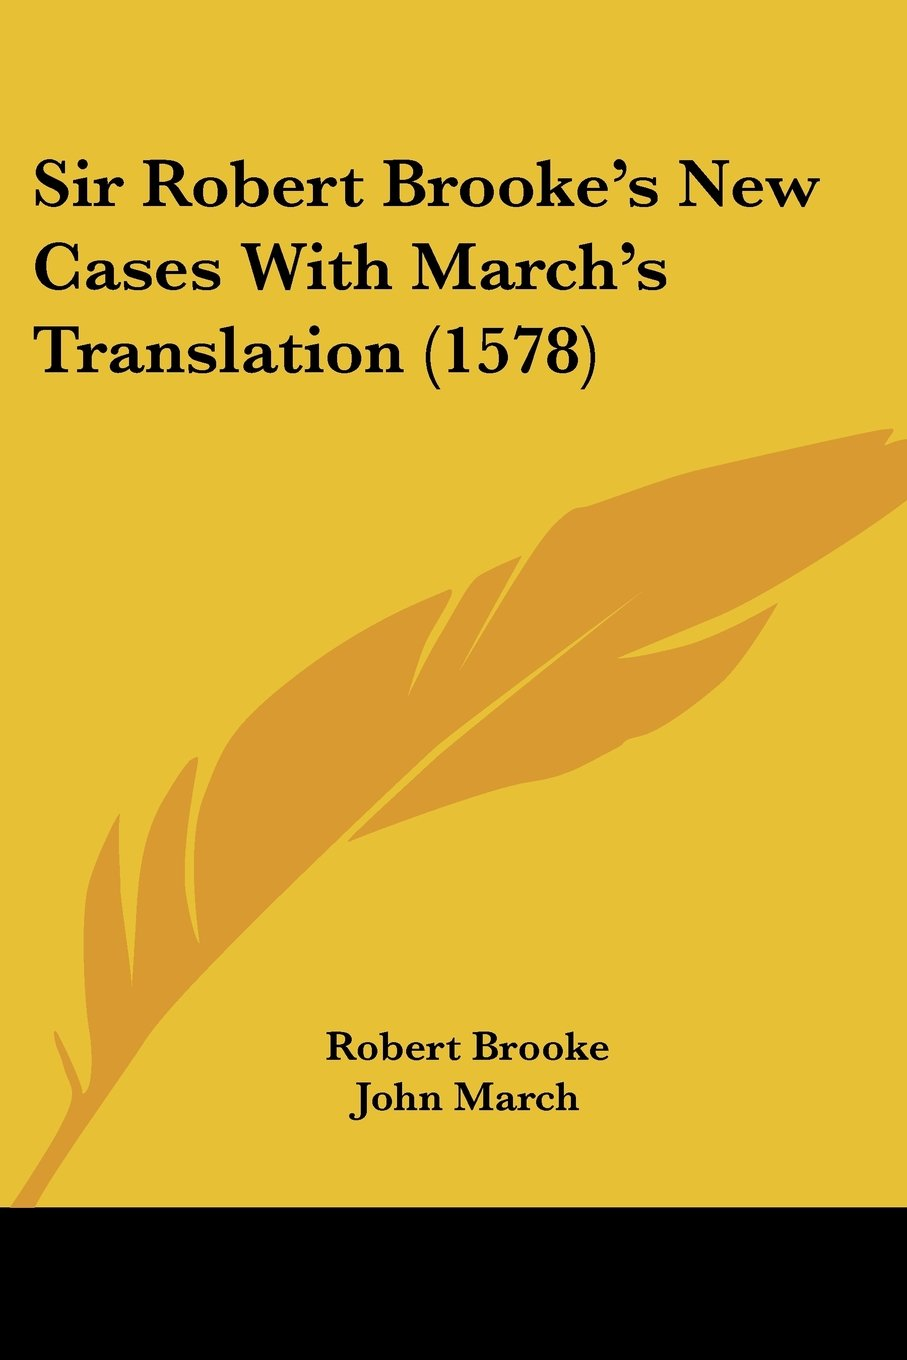 Sir Robert Brooke's New Cases With March's Translation (1578) PDF